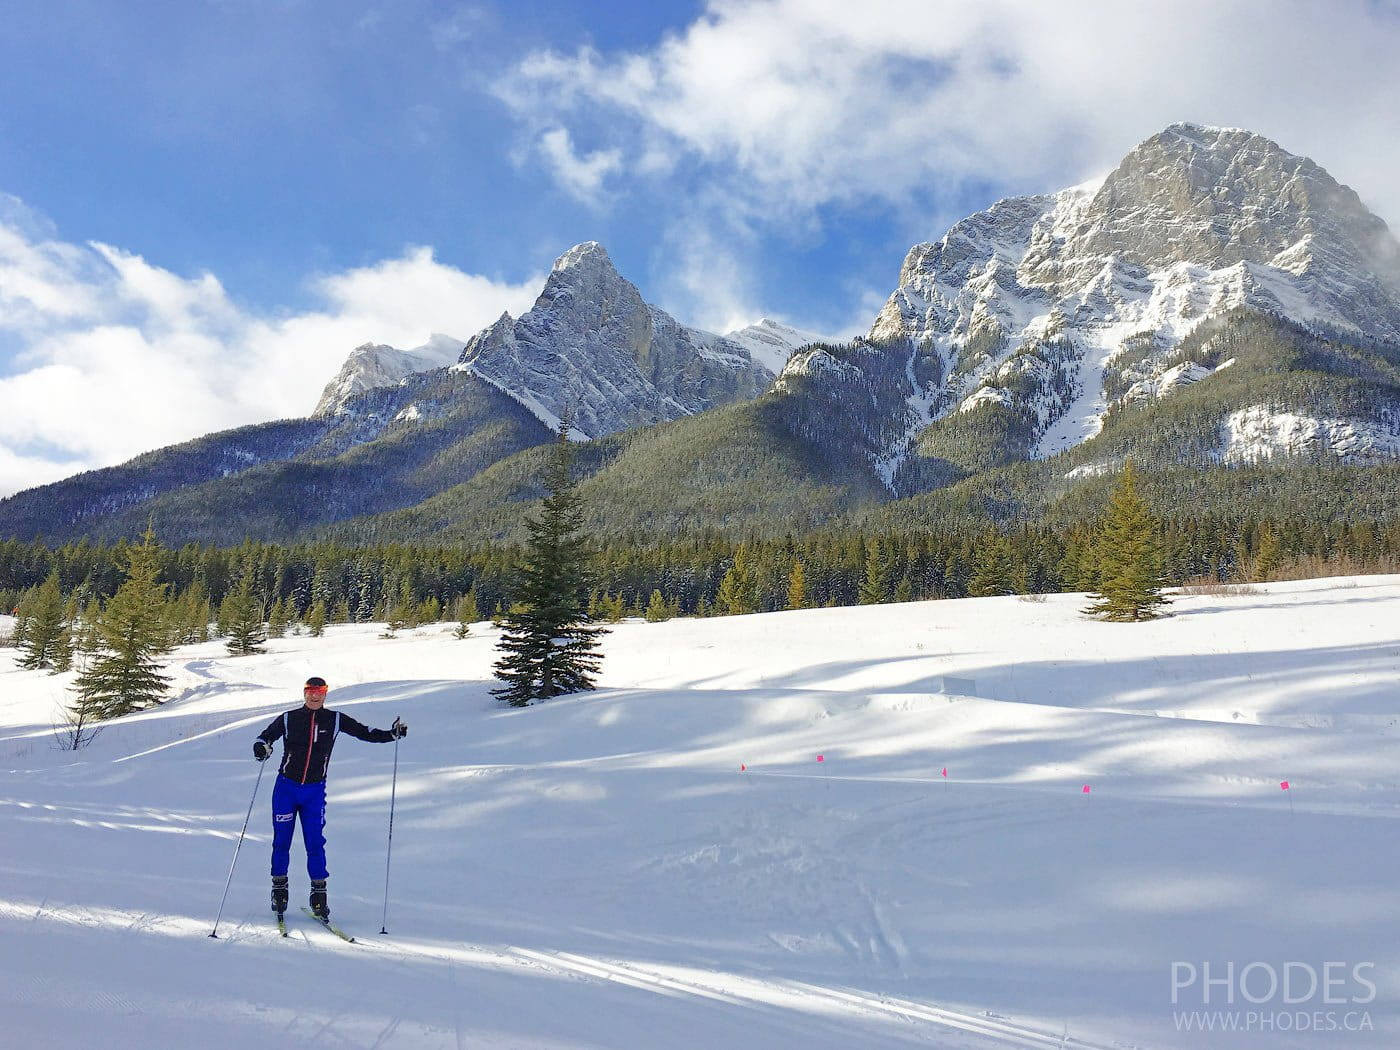 Cross-country skiing in Canmore Nordic Center